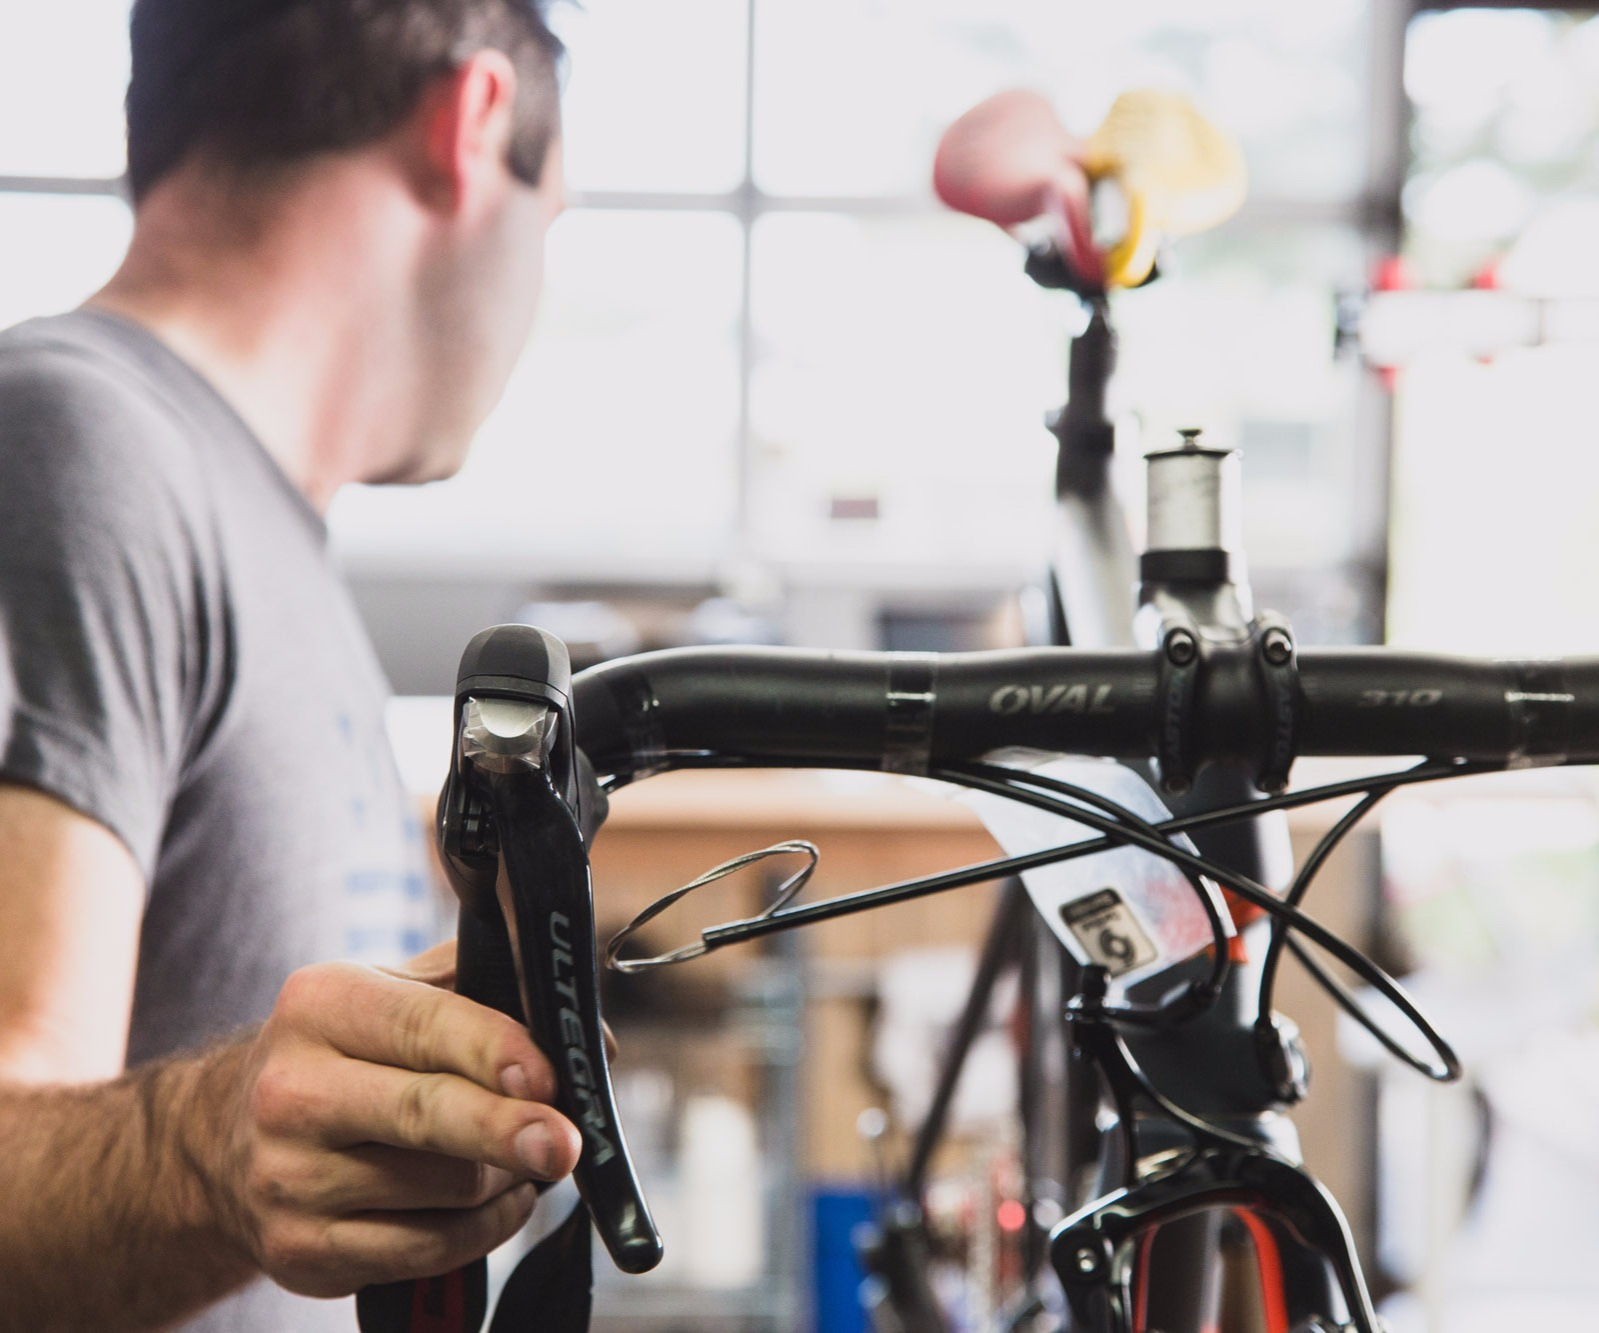 Full service bike repair shop